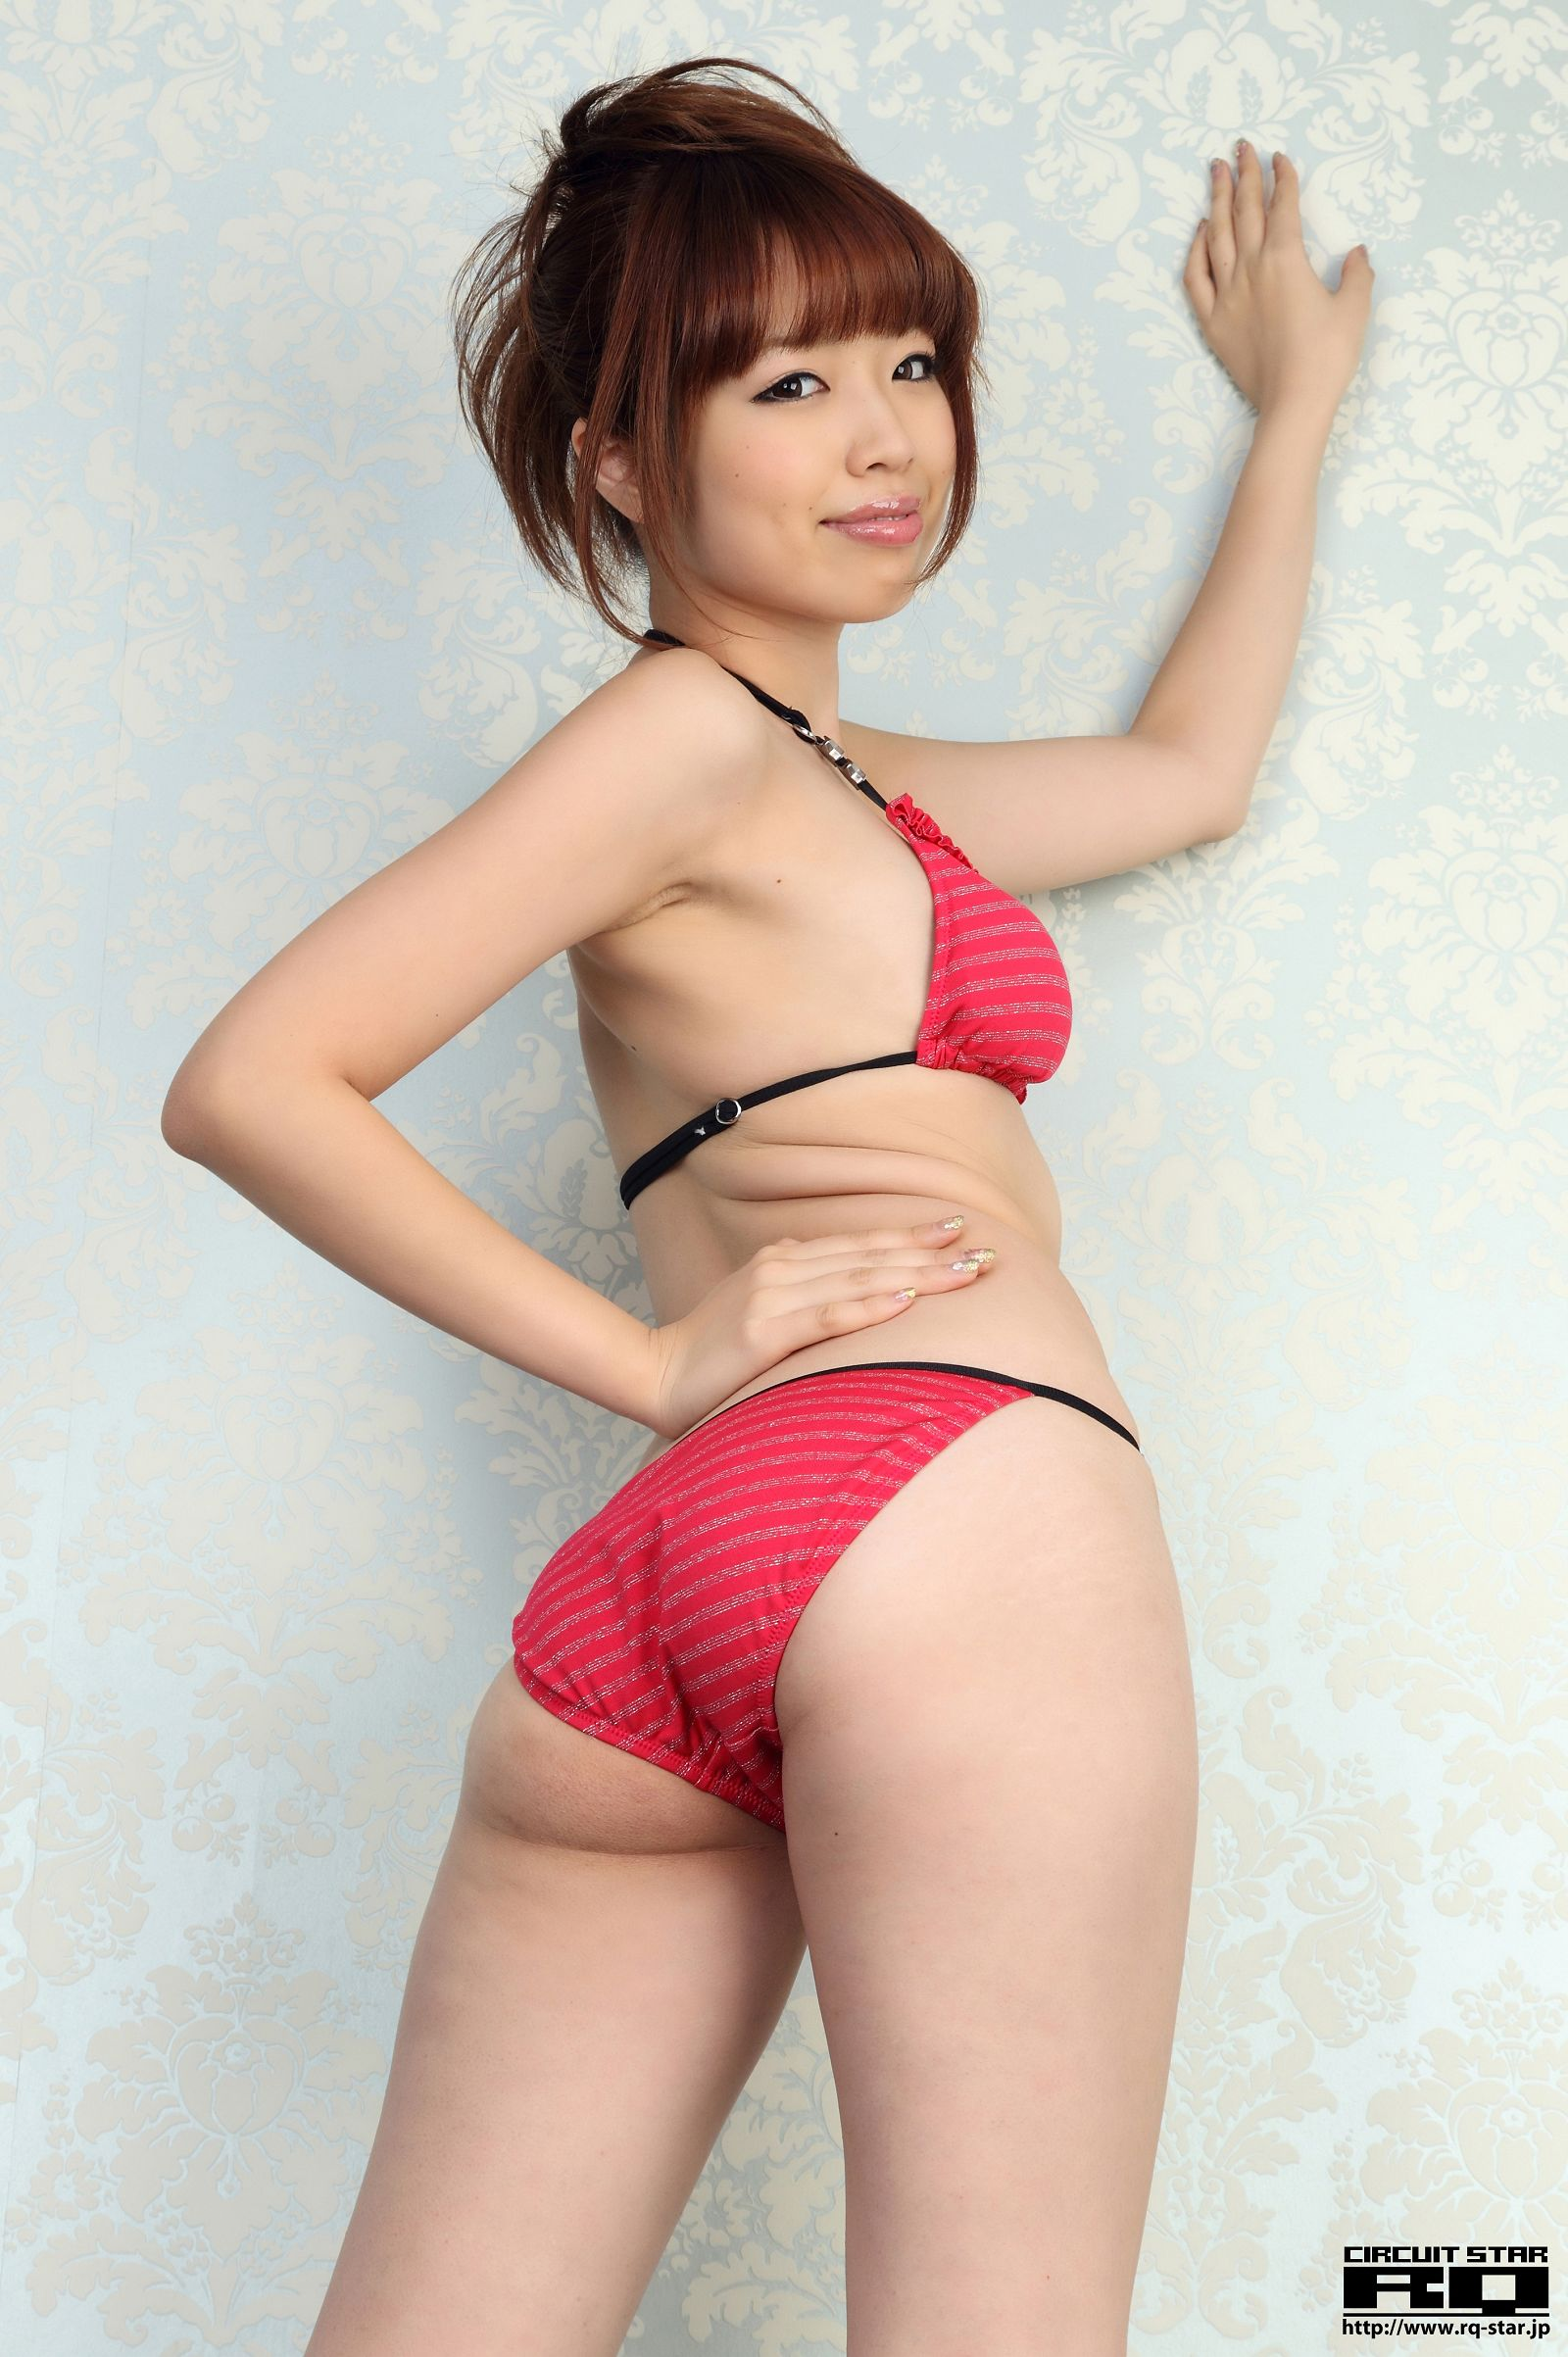 [RQ STAR美女] NO.00610 Minori Yamaoka 山岡実乃里 Swim Suits[122P] RQ STAR 第2张